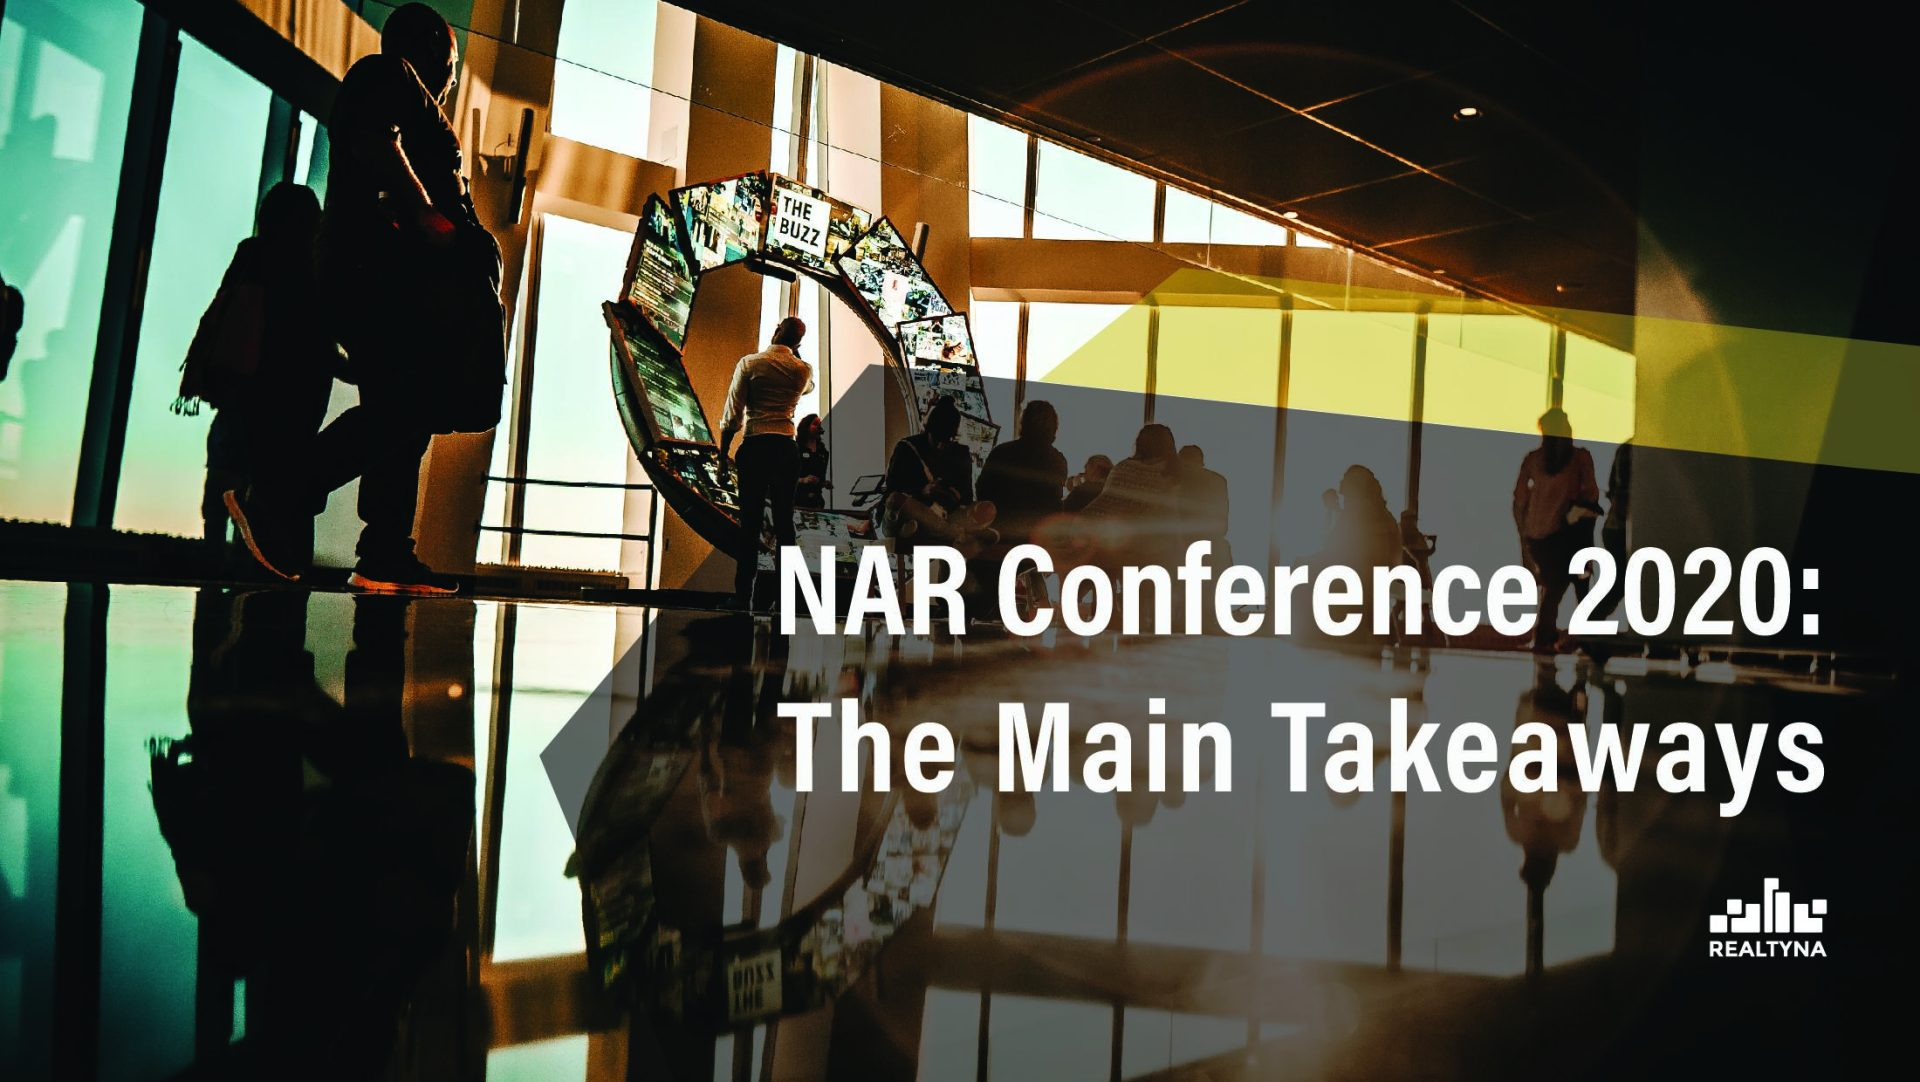 NAR conference 2020